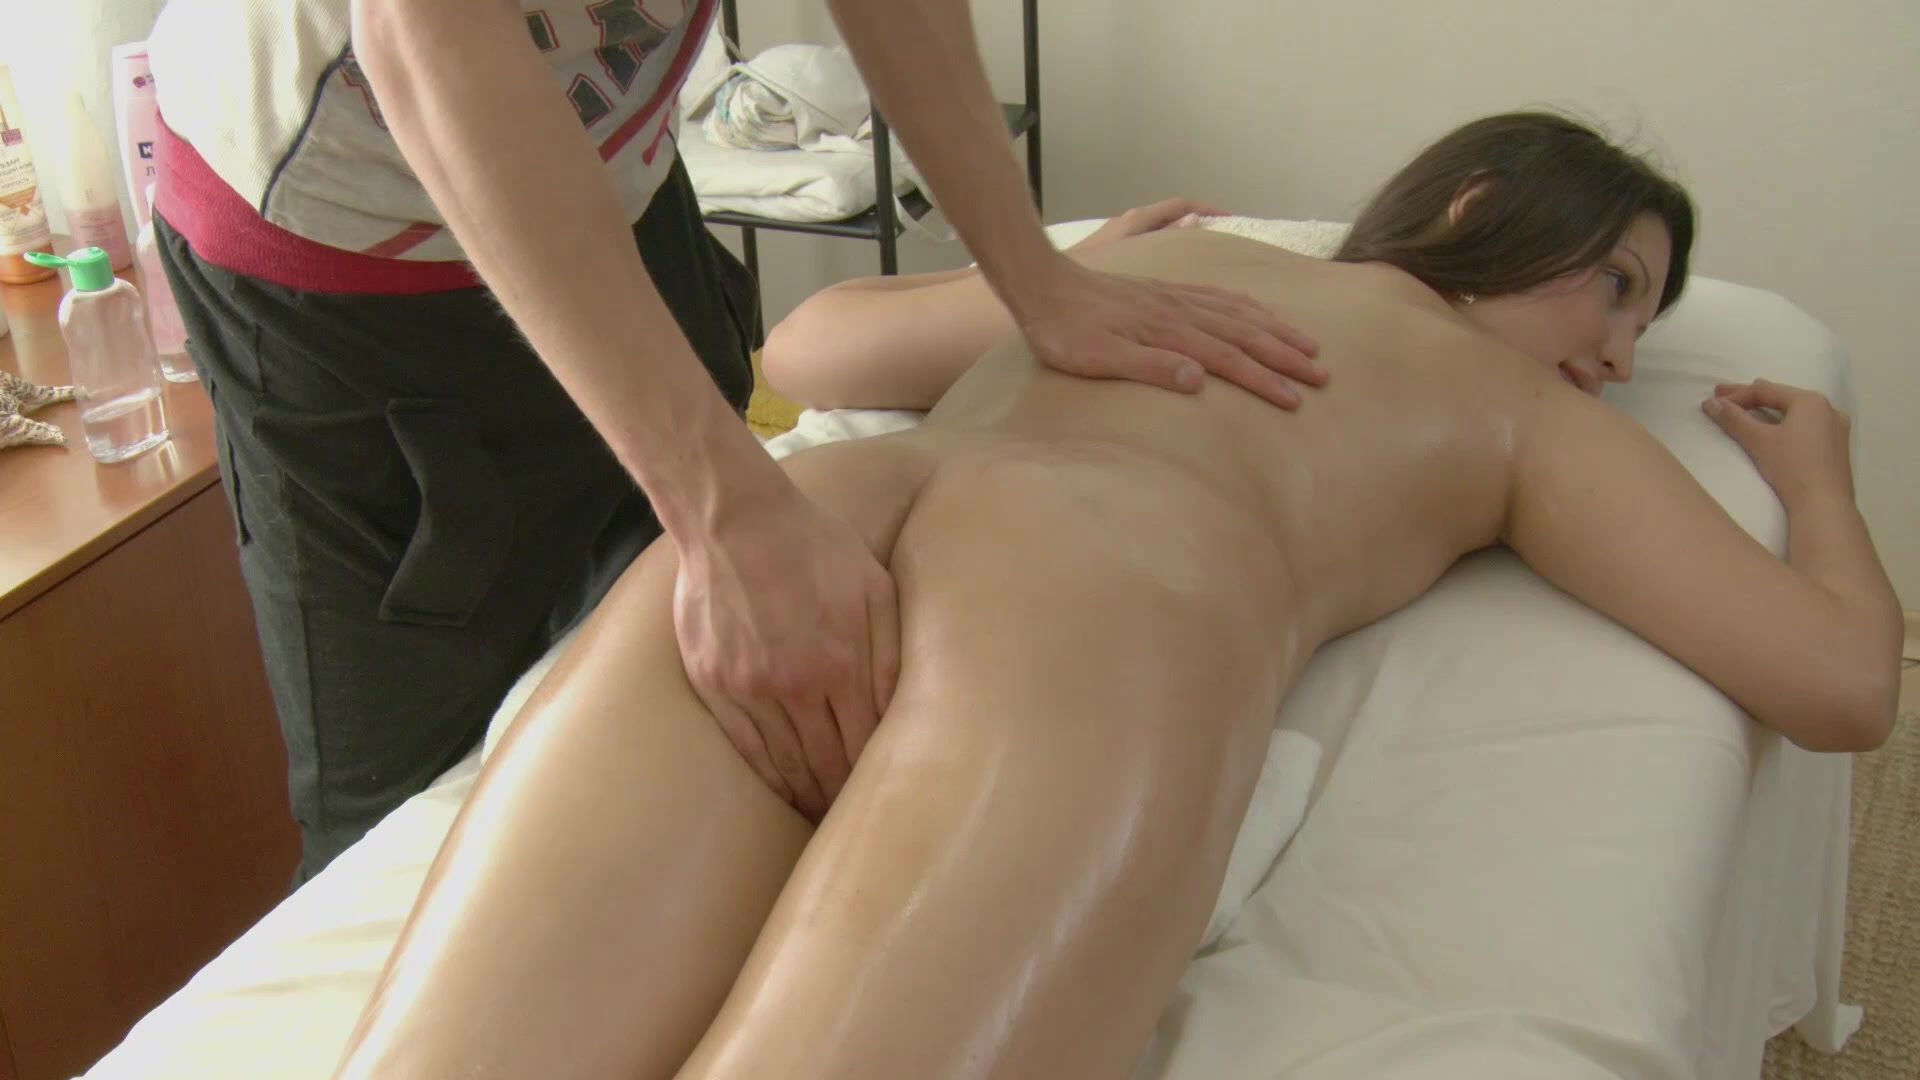 Teen Massage with Toys